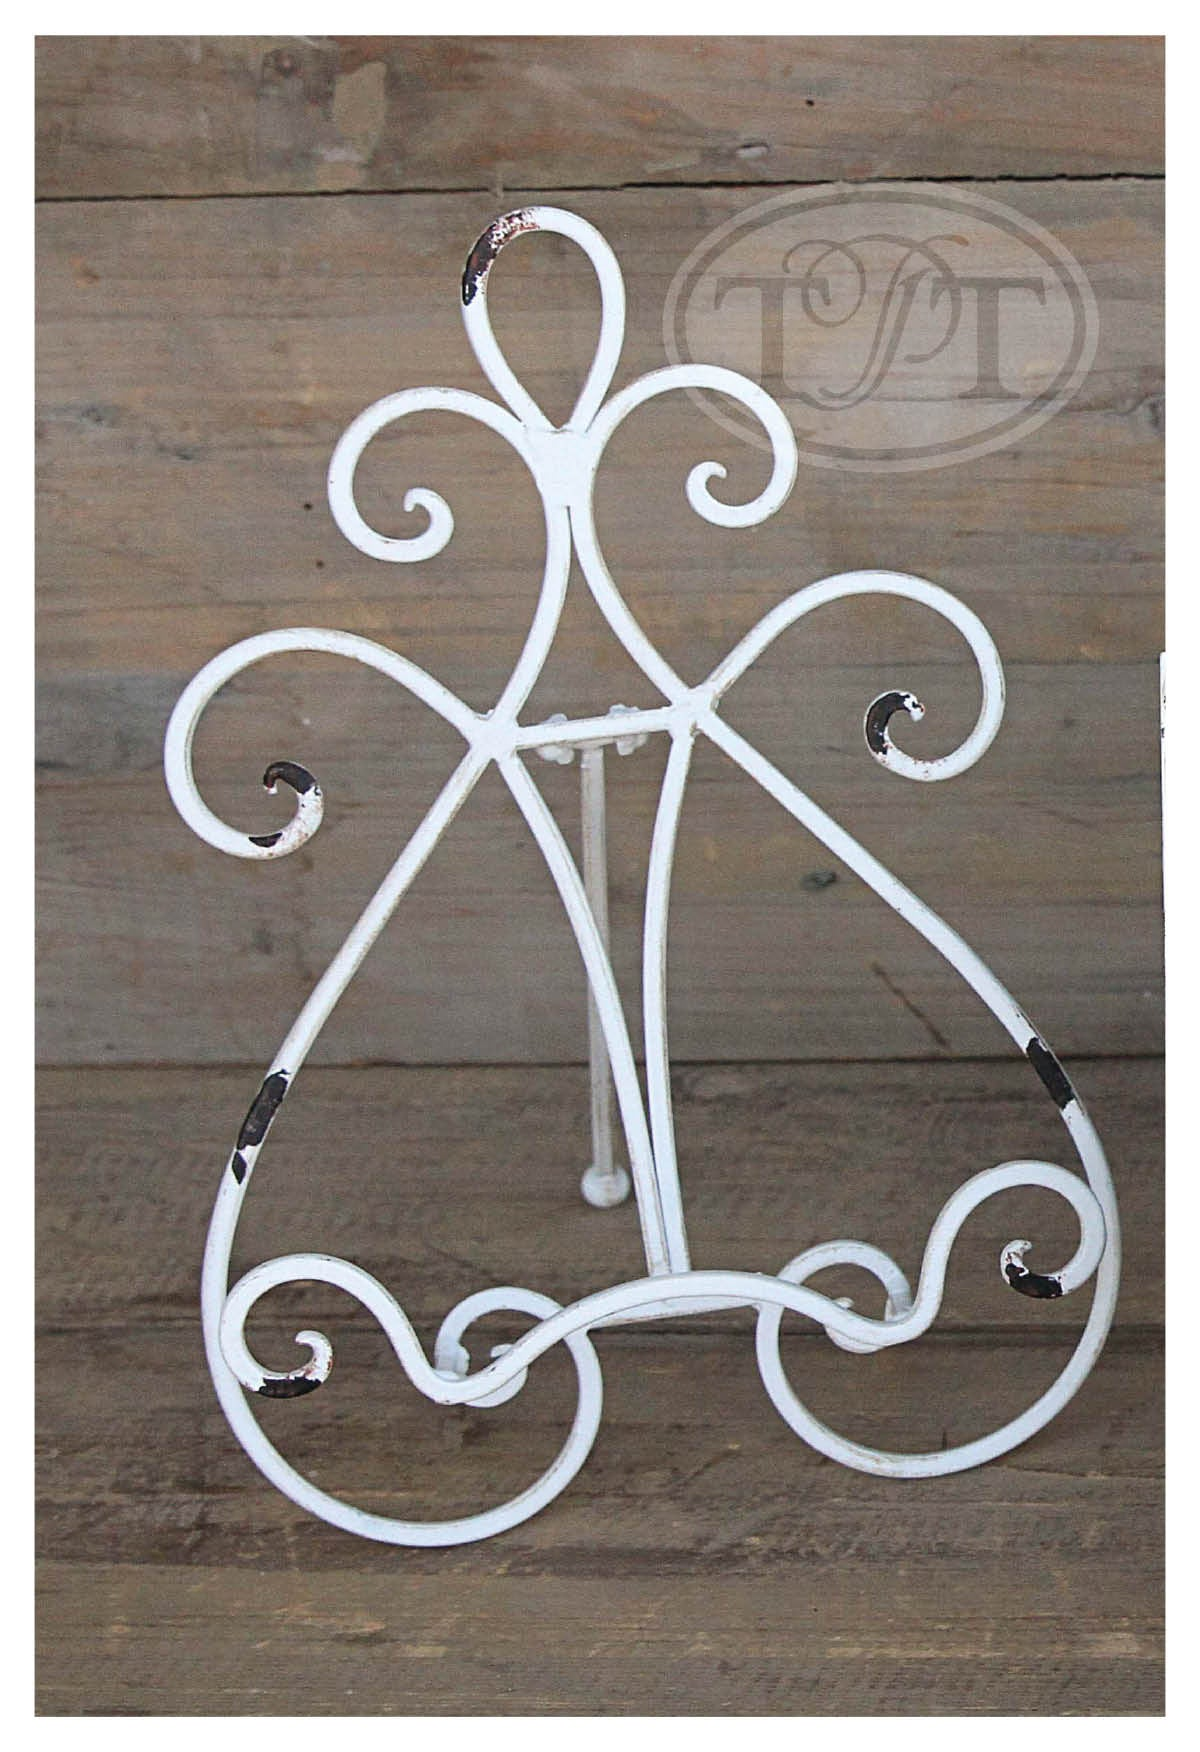 Swirled Metal Easel Stands!